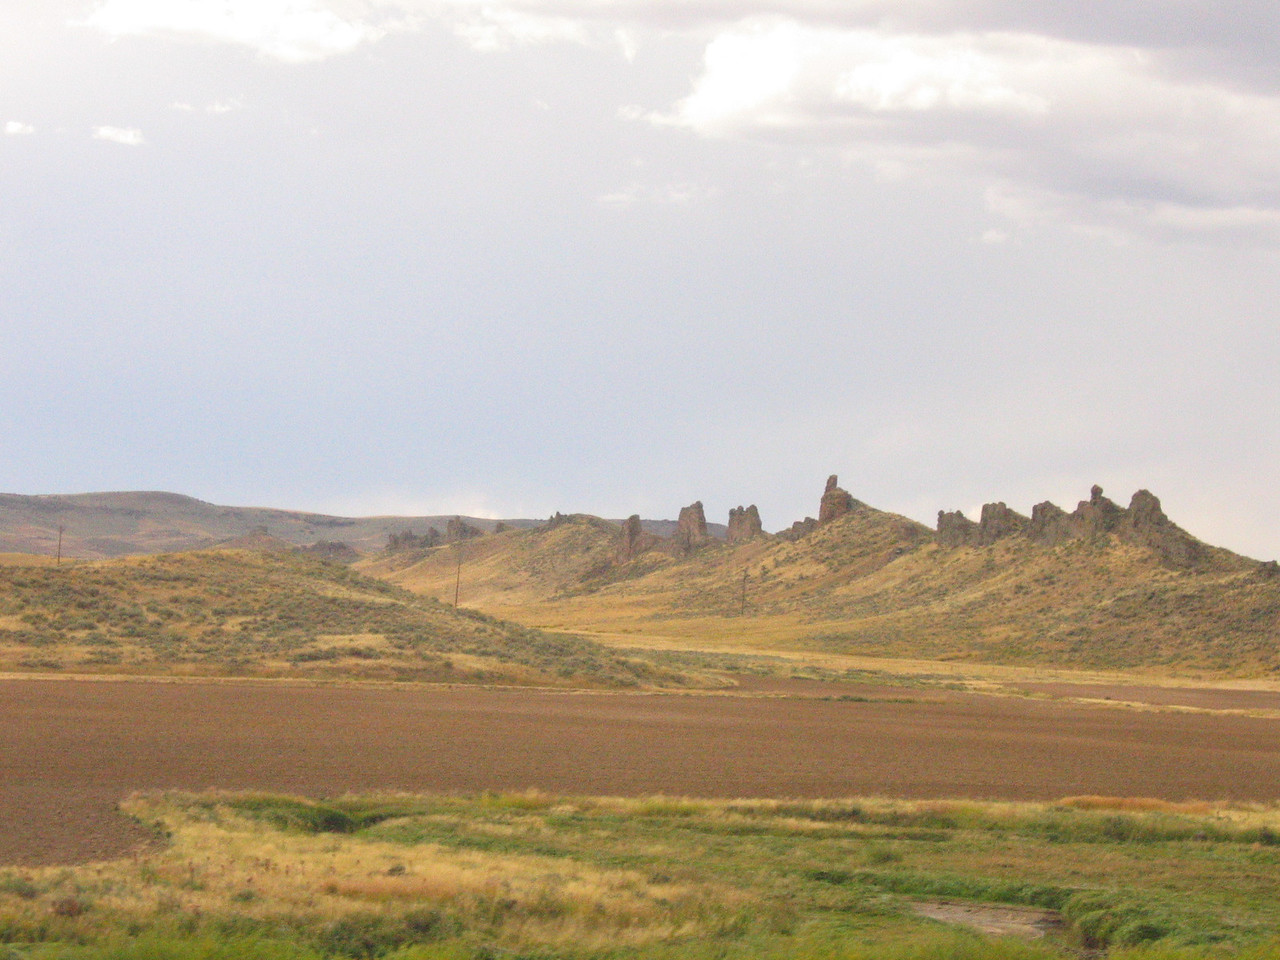 As we head towards Rock Springs, WY, there are some interesting geographical sites that break up the monotony.